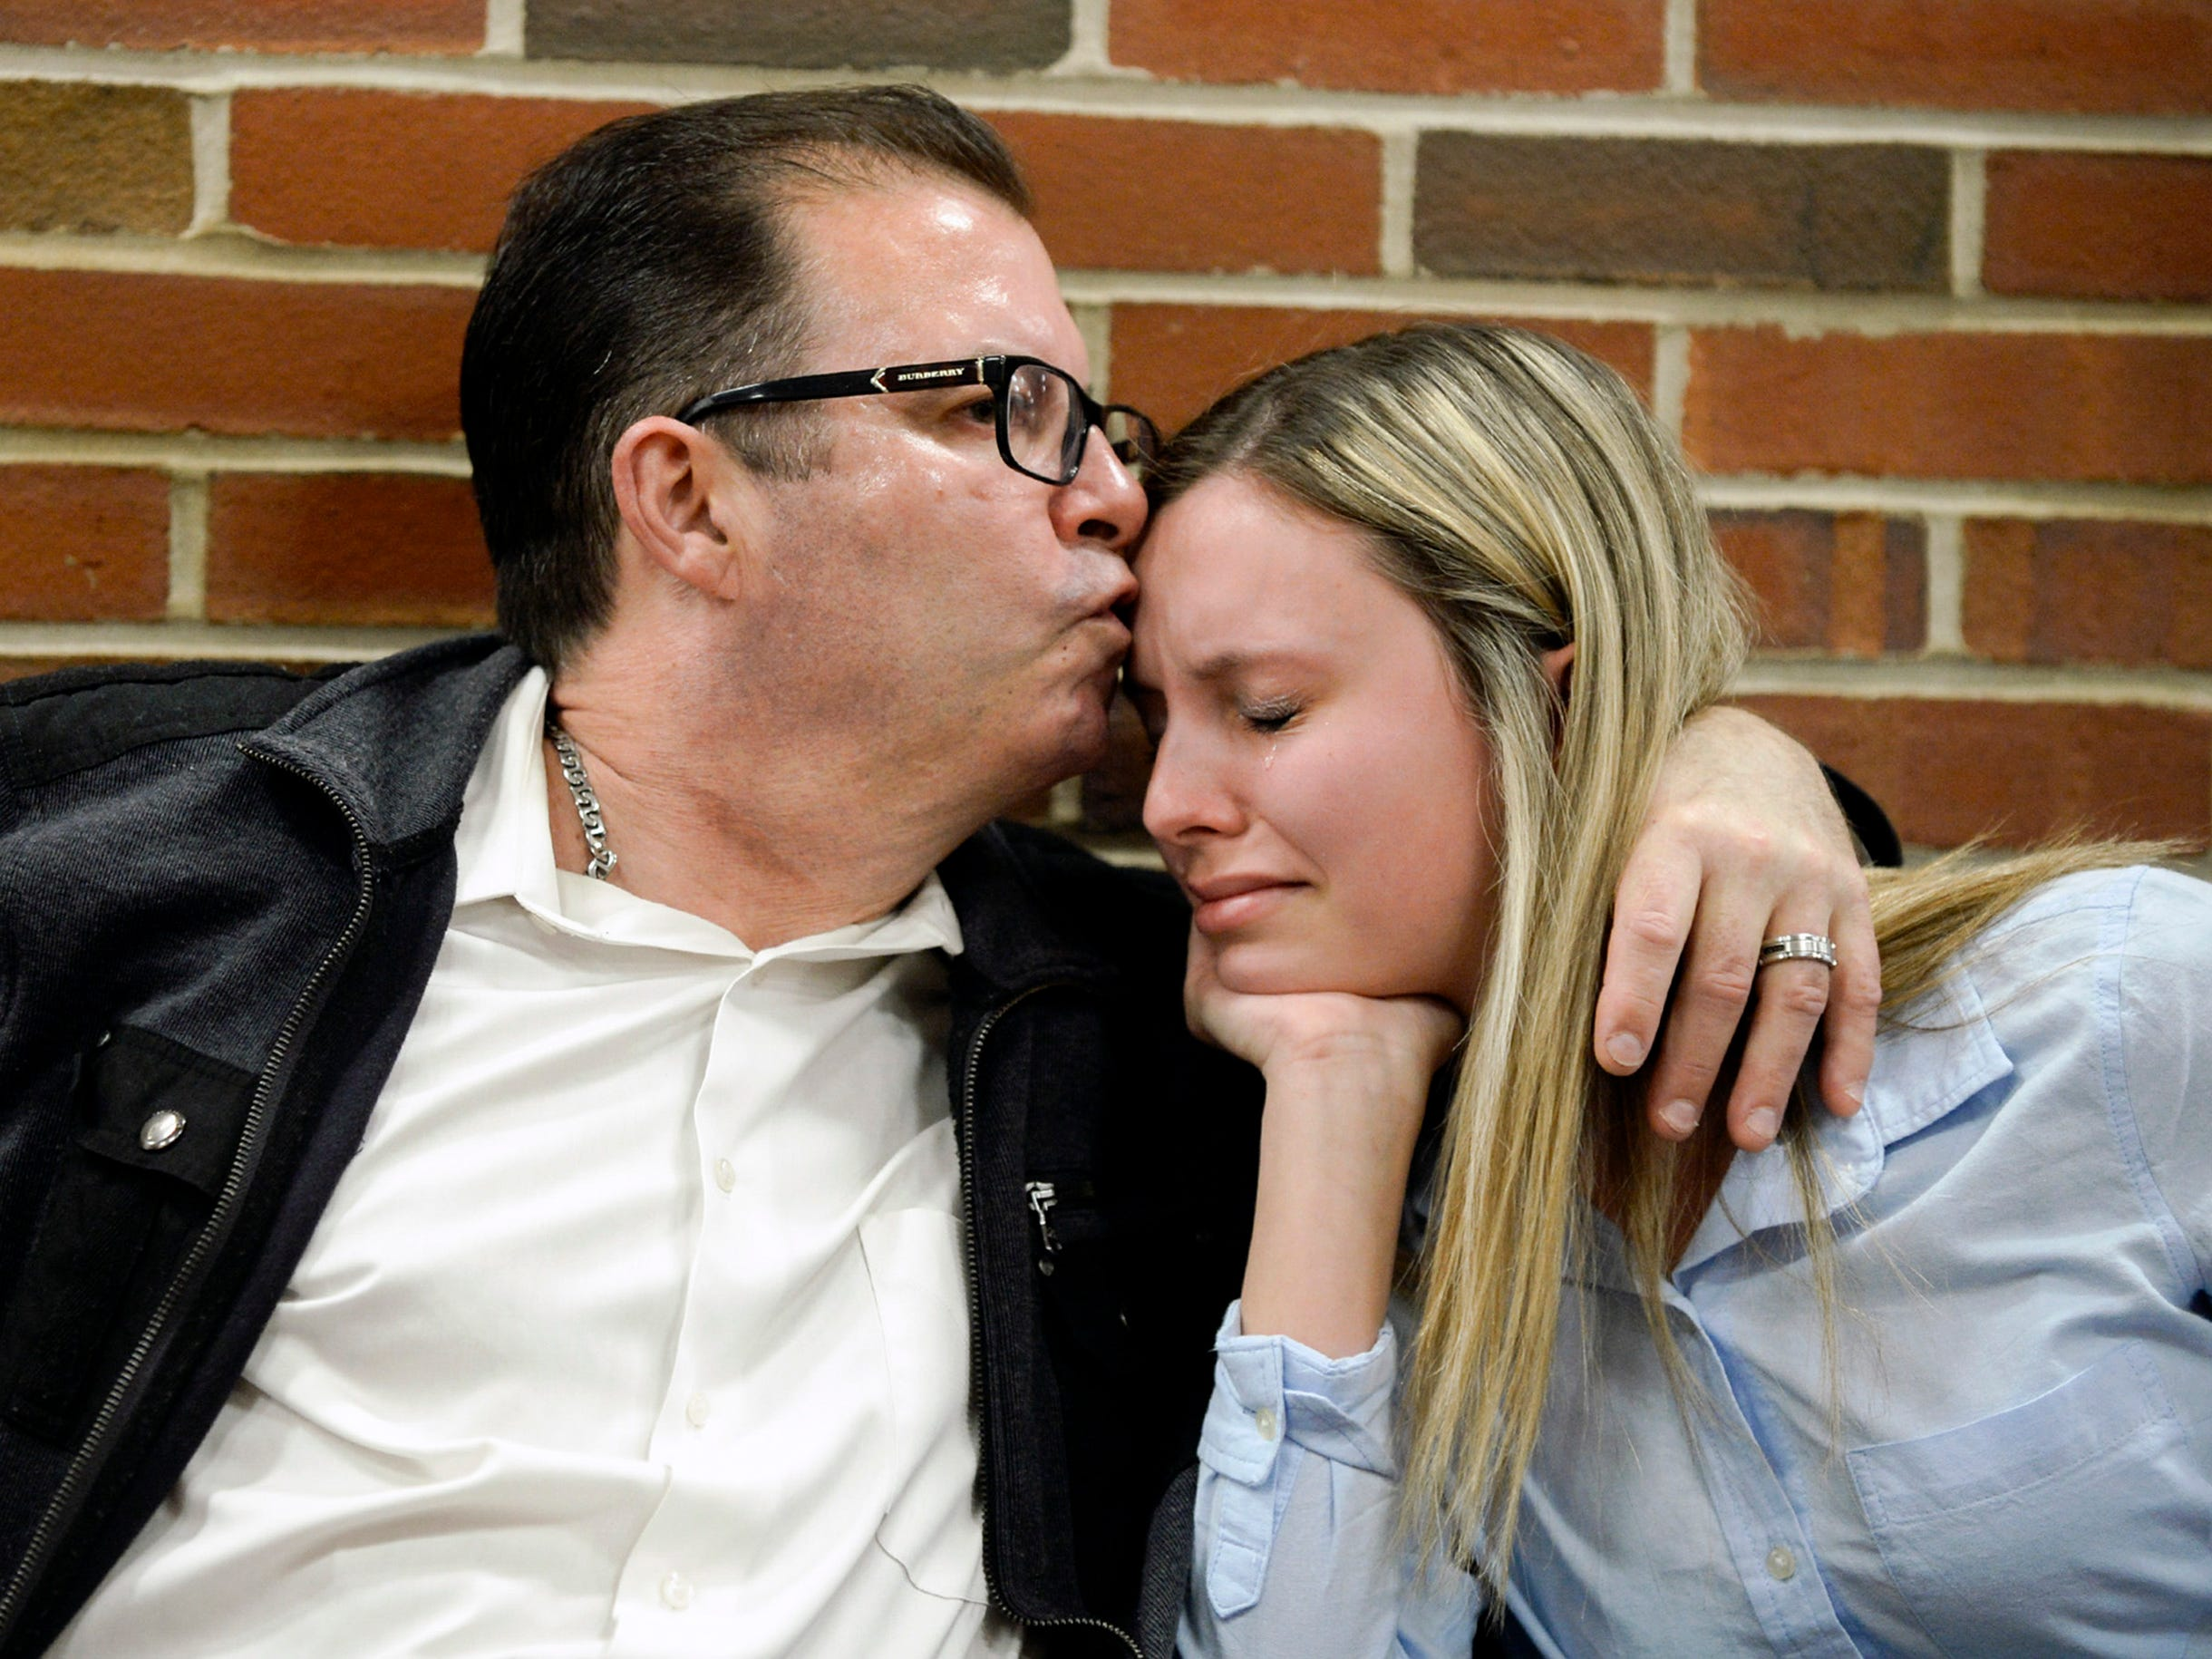 Steve McDonald kisses his daughter Devon McDonald, 18, of Marlton, while discussing the loss of their daughter and sister, 15-year-old Madison McDonald, following a detention hearing for Austin F. Cooper, 21, of Willingboro Wednesday, April 18, 2018 at Burlington County Superior Court in Mount Holly, N.J. Cooper, who is charged with strict liability for an opioid-induced death of Madison McDonald, will remain detained until trial.